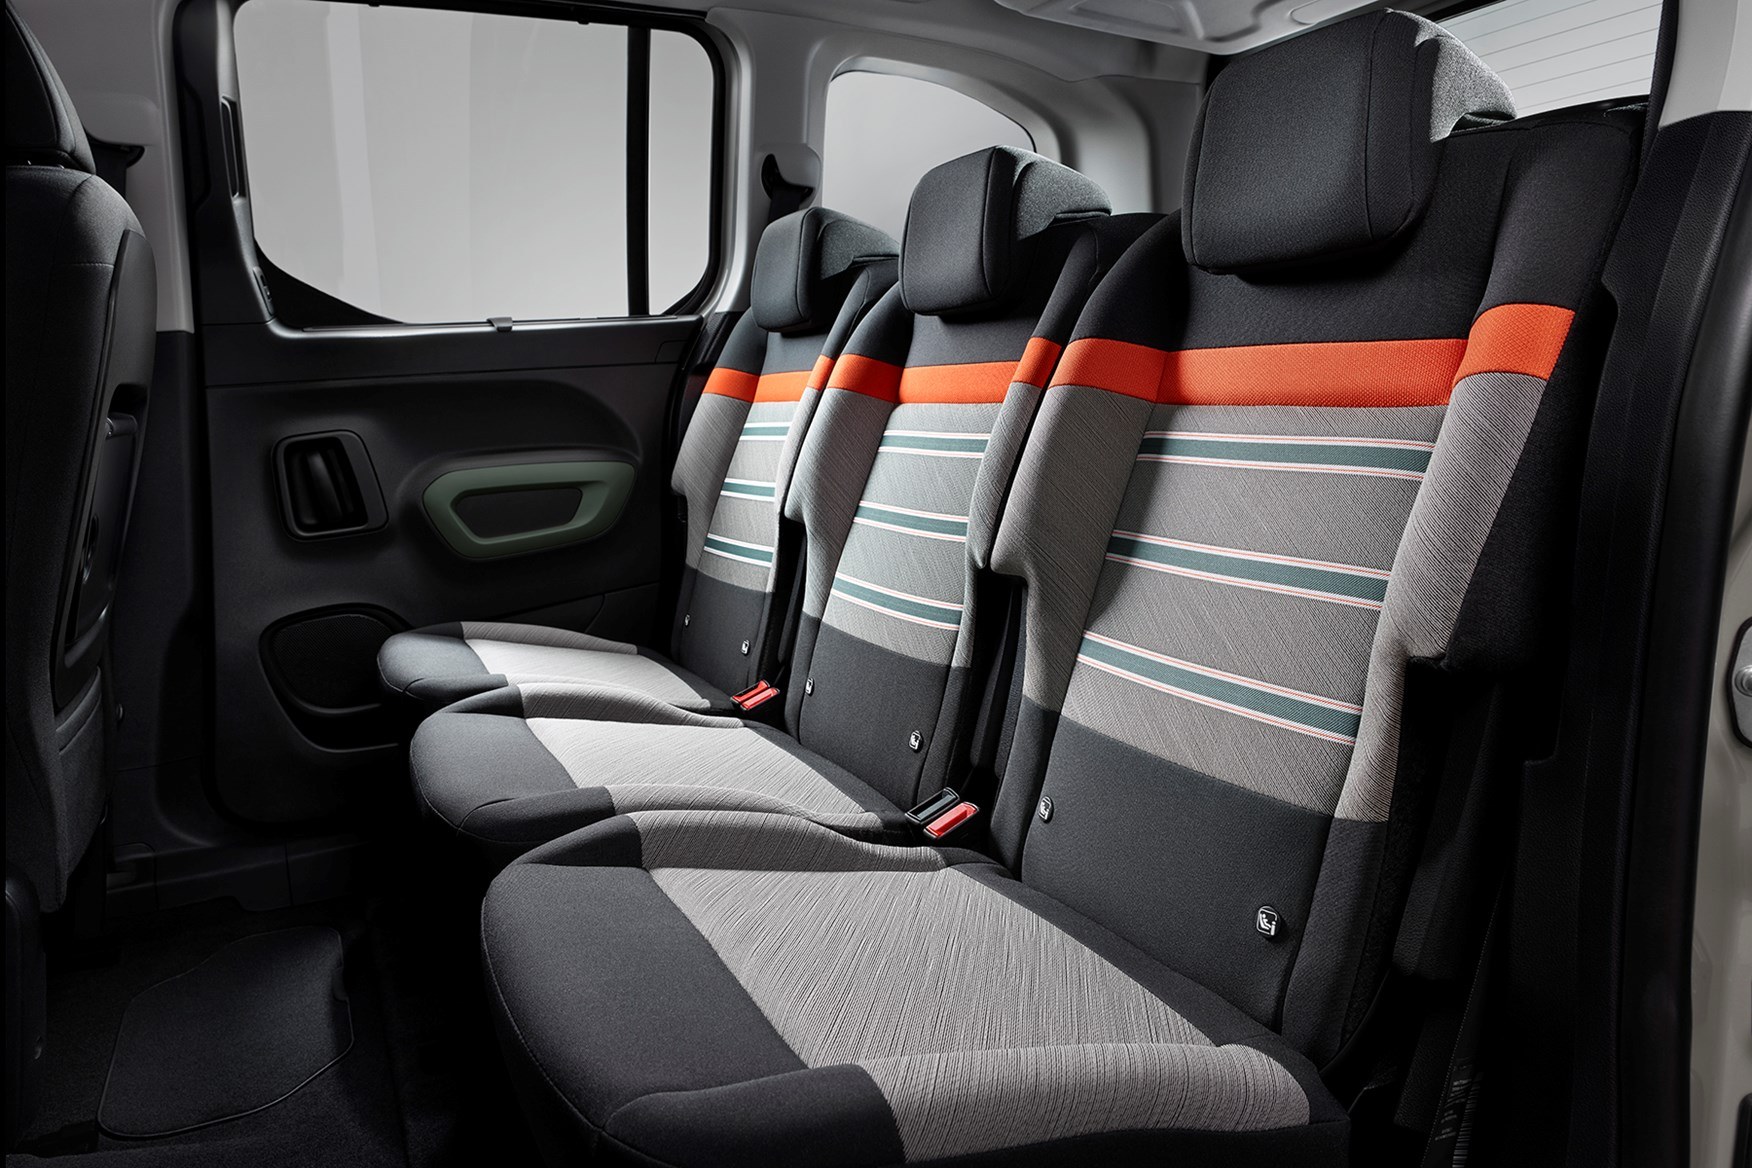 ... Citroen Berlingo interior detail ...